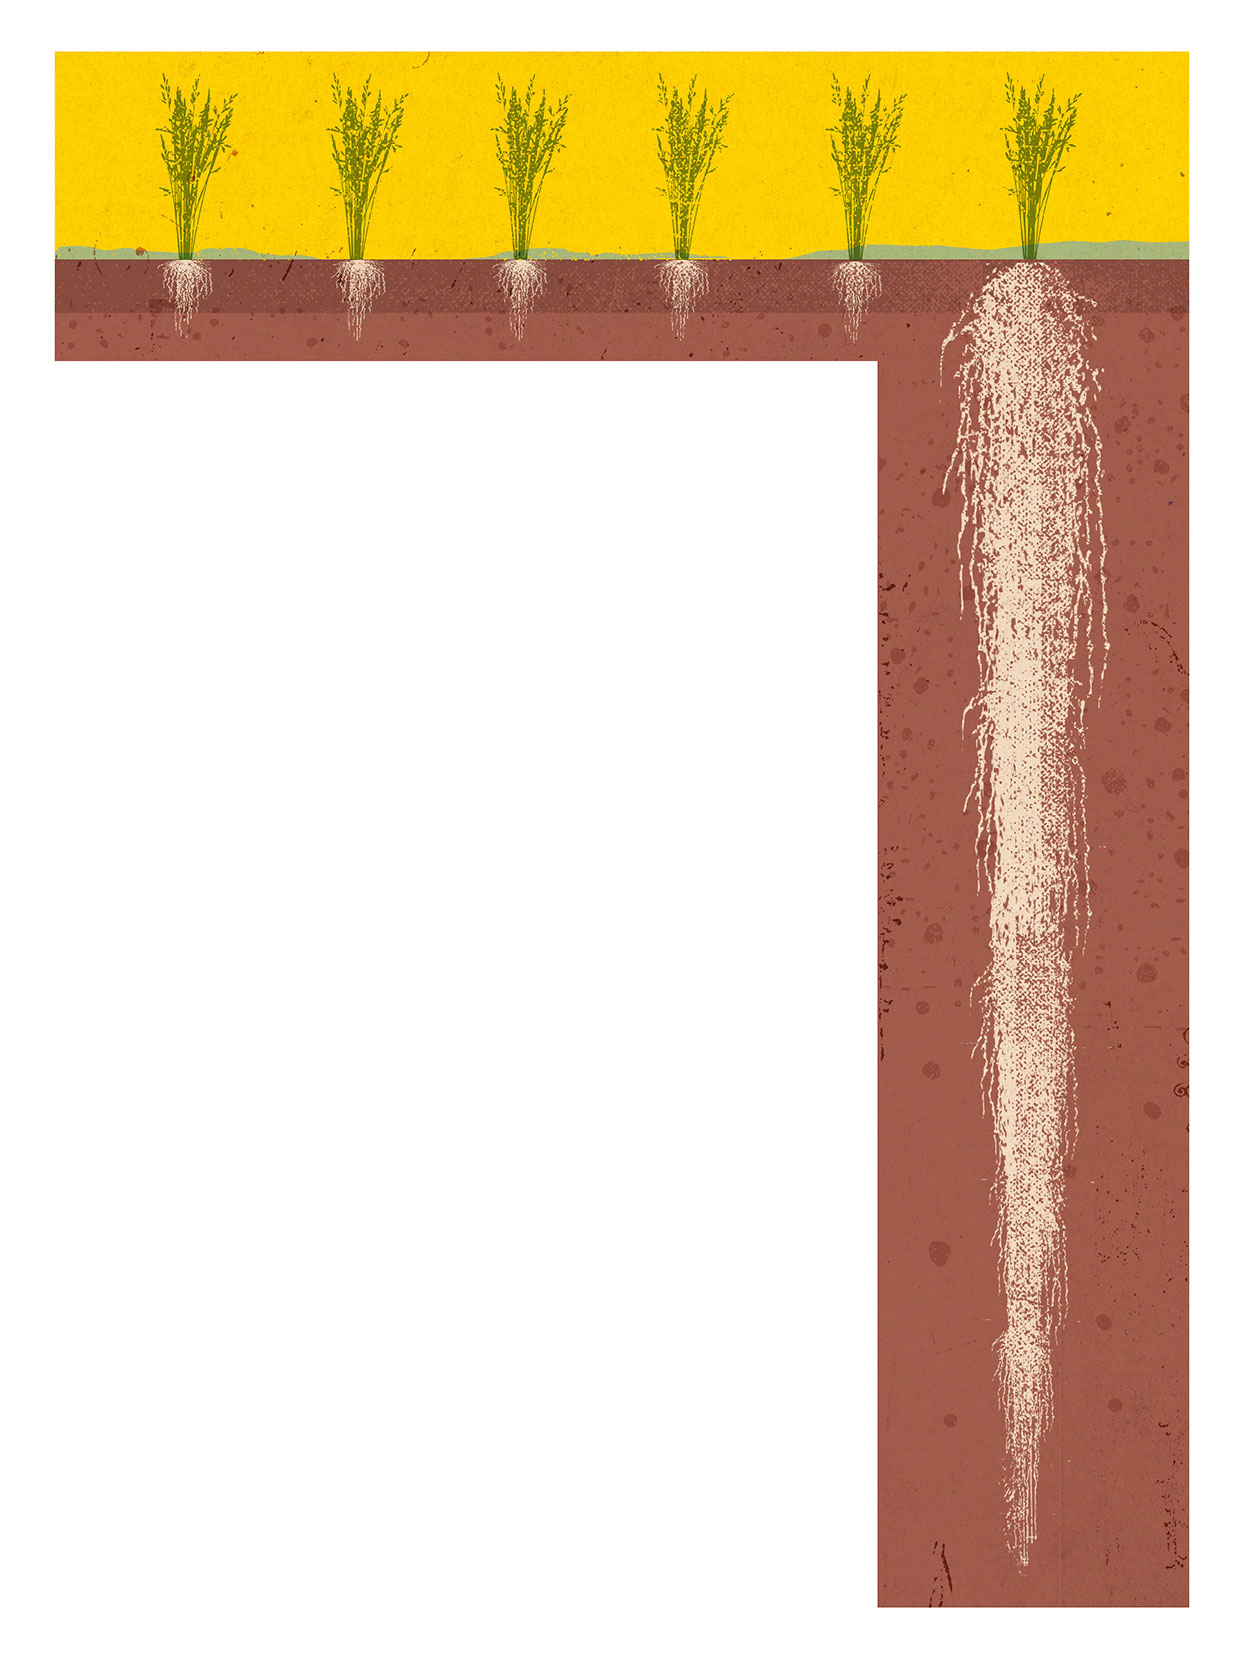 Illustration of a cross section of several grains with roots visible in the ground, the last grain with roots that reach very far down into the ground